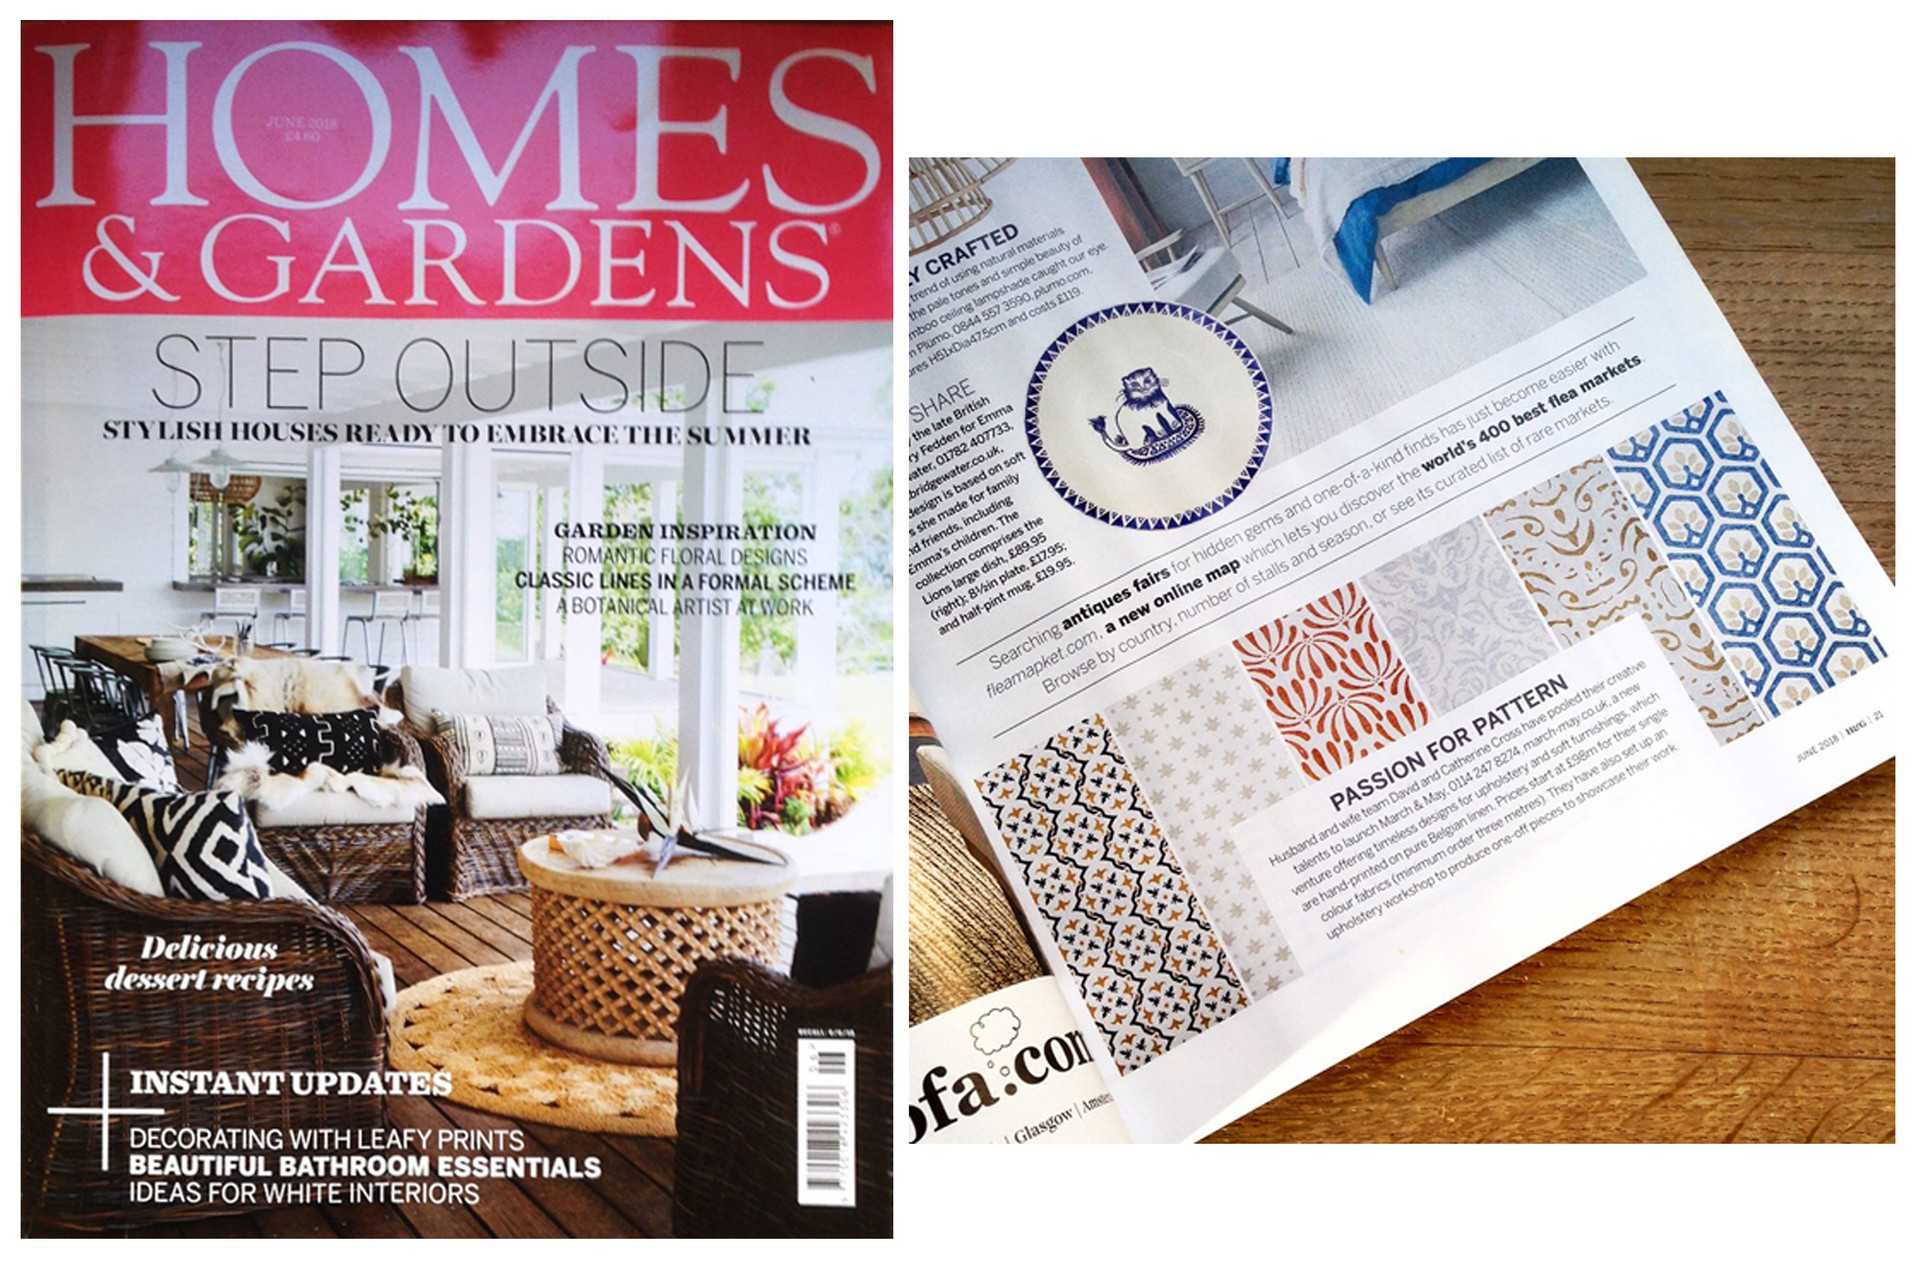 PRESS Homes and gardens.jpg